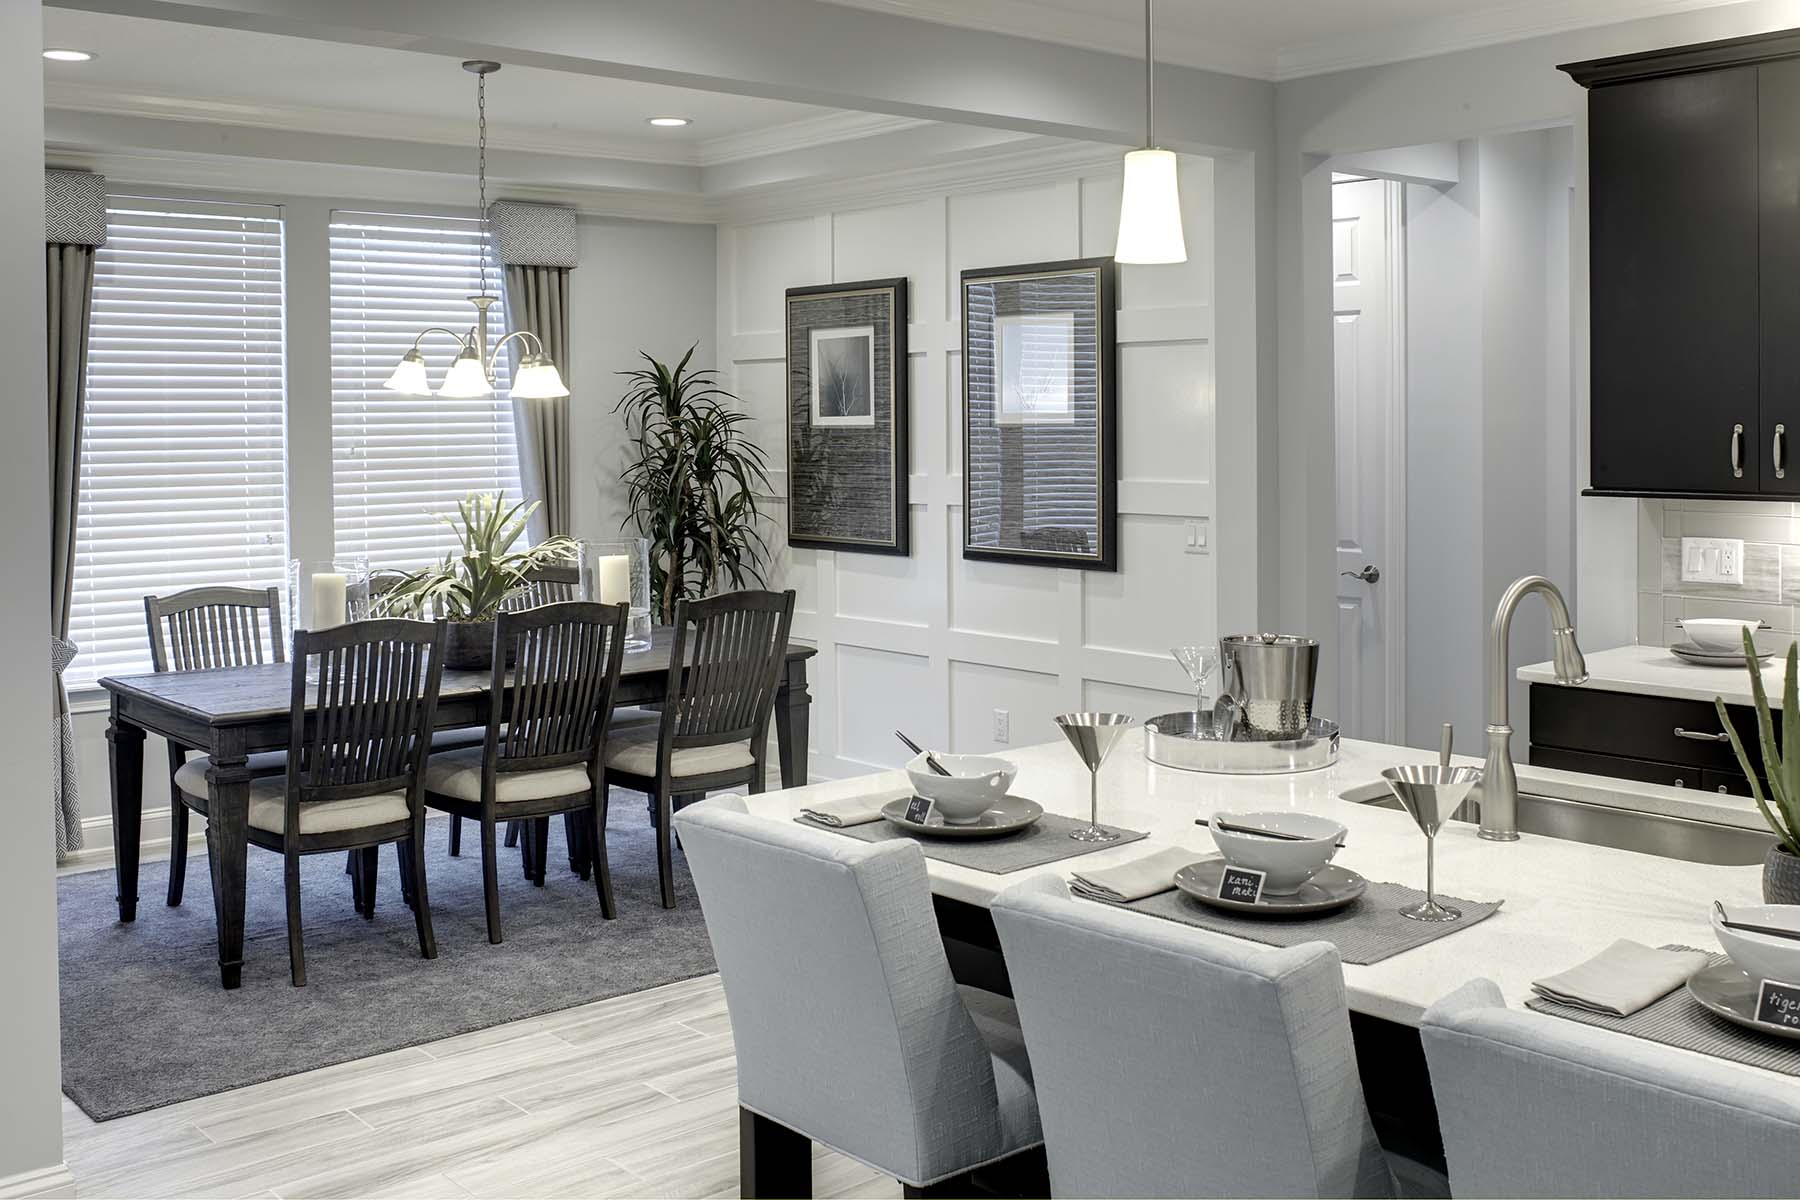 Egret Plan Kitchen at RiverTown - Arbors in St. Johns Florida by Mattamy Homes